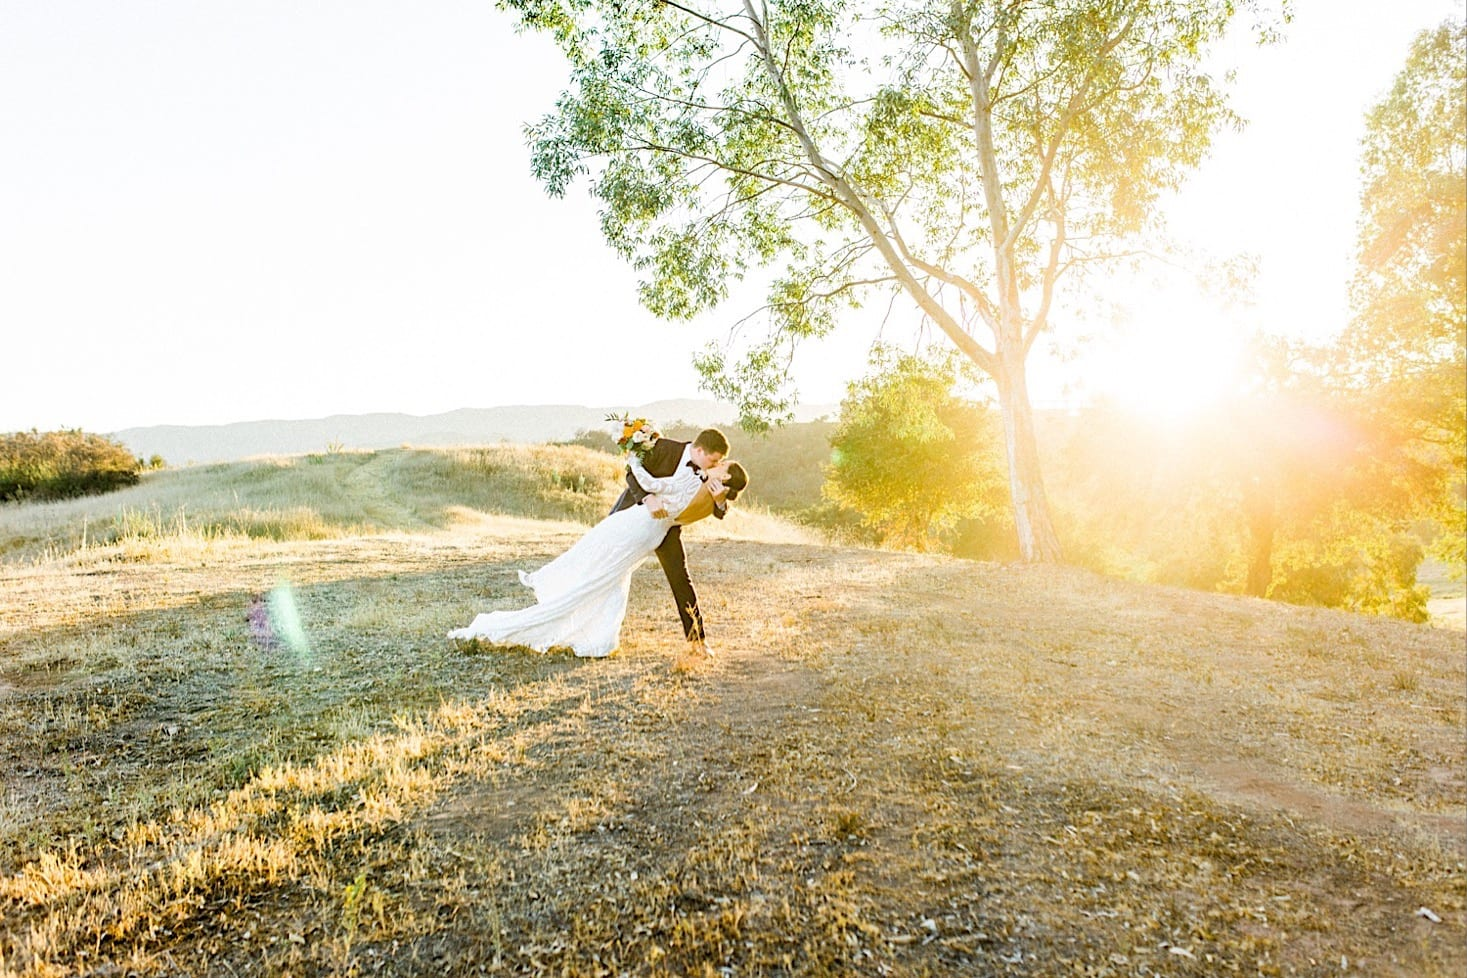 Ojai Wedding Photographer, Ojai Wedding Photography, Photographer in Ojai, Engagement Photos in Ojai, Ojai Engagement Photos, Black Walnut Ranch Wedding, Wedding at Black Walnut Ranch, Collins Ranch, Wedding at Collins Ranch, Collins Ranch Wedding, Colorful and Romantic Ojai Wedding, Fun and romantic Ojai Wedding, Ojai Valley Inn Wedding, Ojai Rancho Inn Wedding, Wedding at Ojai Rancho Inn, Ojai winery wedding, wedding at Ojai Winery, Private estate wedding in Ojai, Ojai wedding at private estate